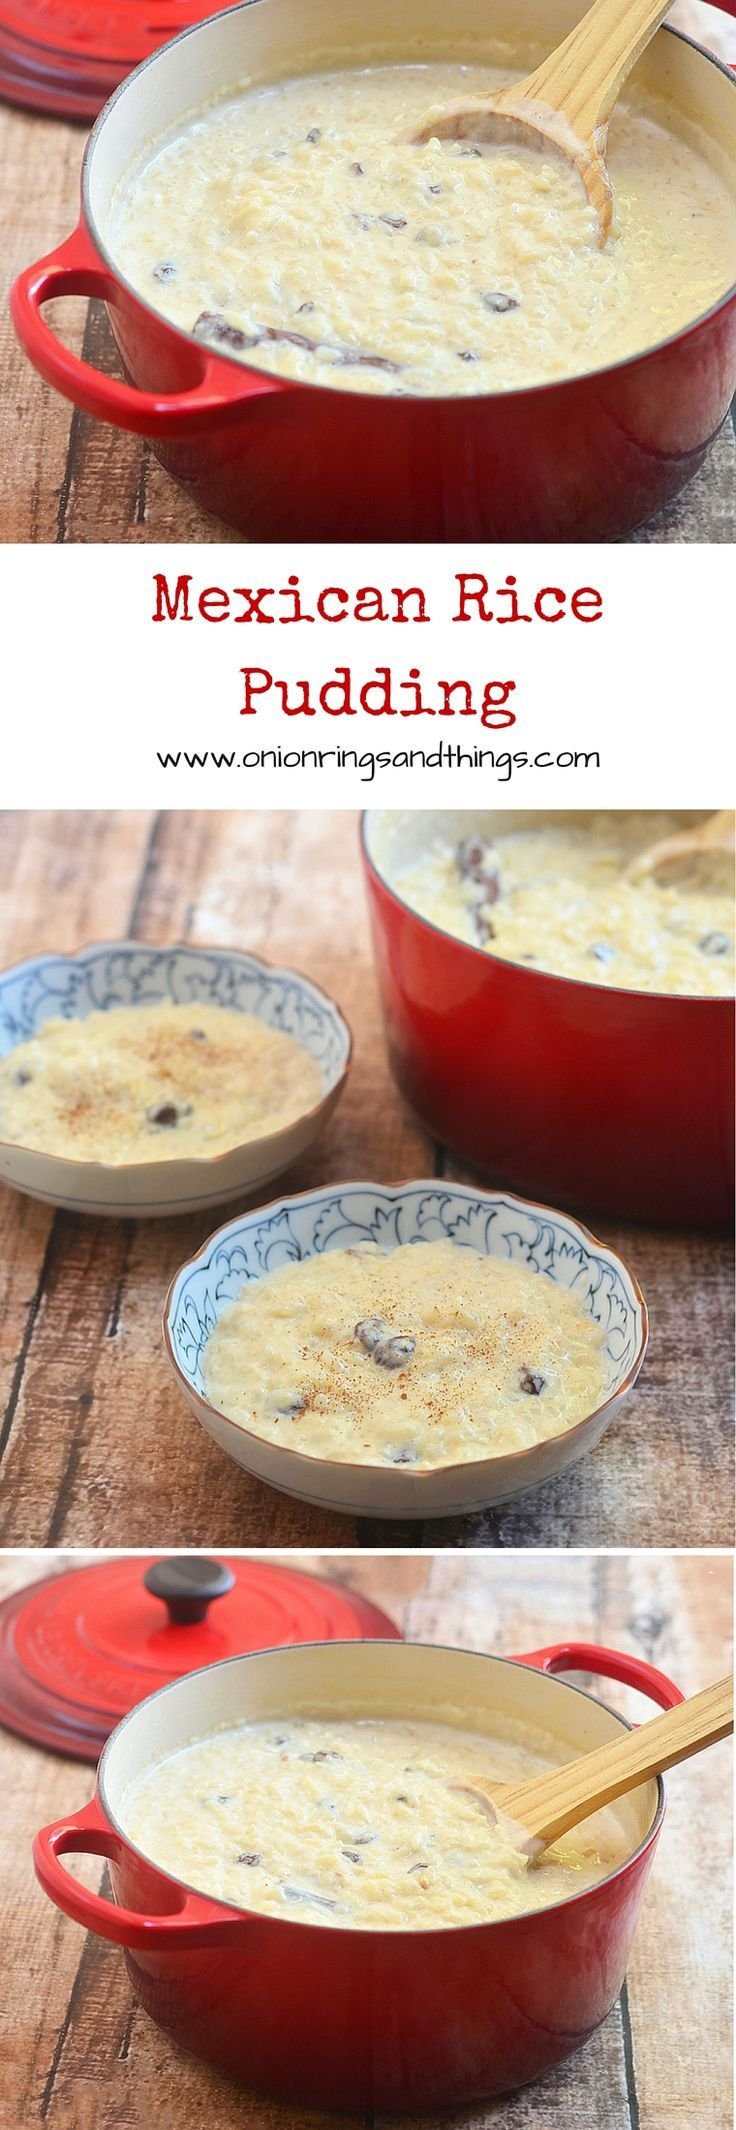 Mexican rice pudding or also known as arroz con leche is a delicious, gluten-free treat  made with rice, milk, cinnamon and raisins. Wonderful as dessert yet equally great as anytime snack